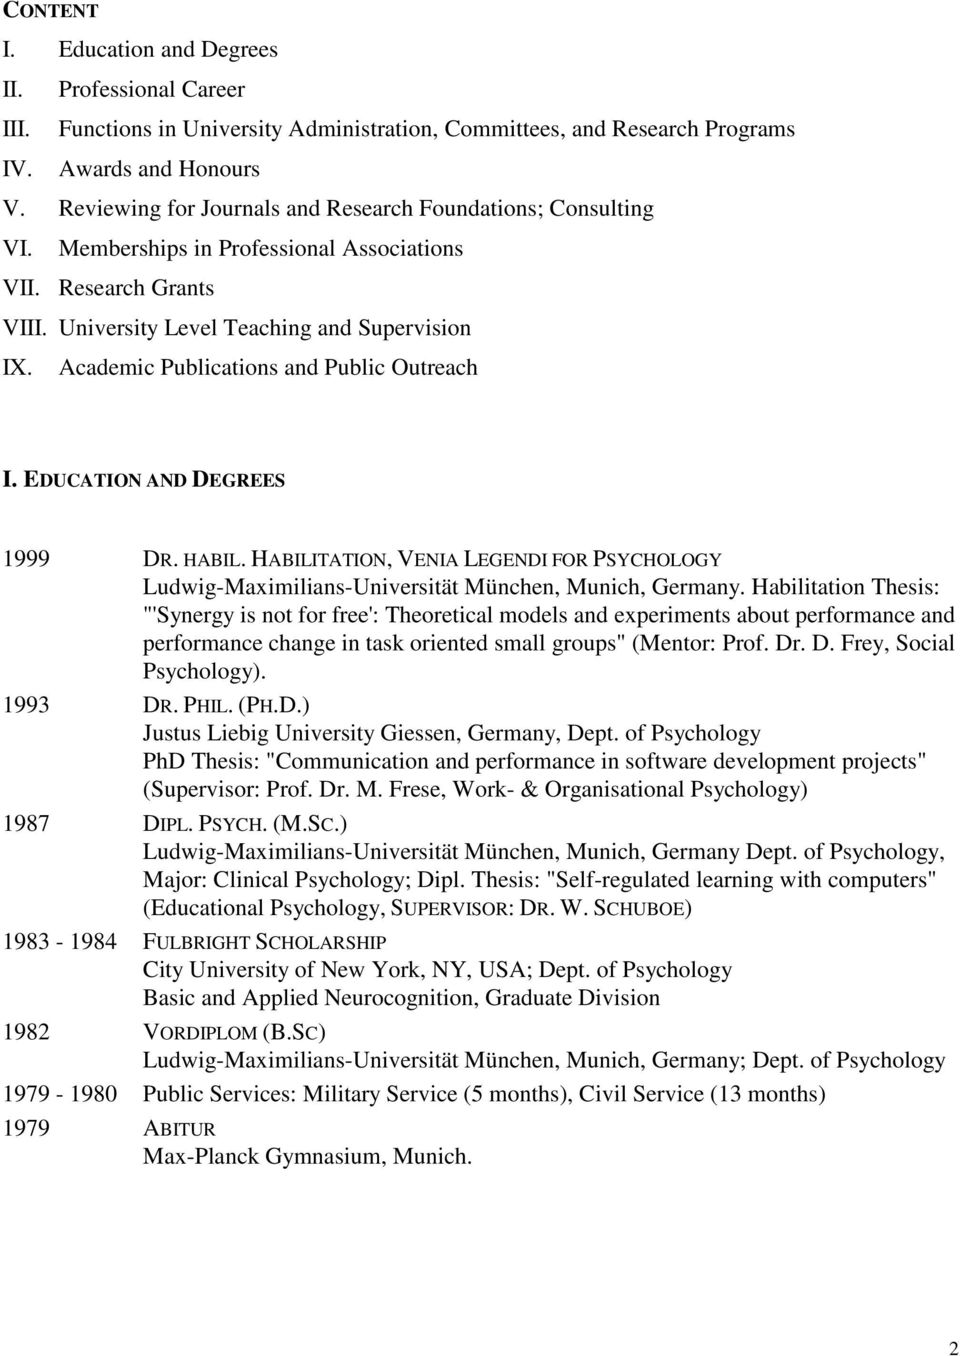 Academic Publications and Public Outreach I. EDUCATION AND DEGREES 1999 DR. HABIL. HABILITATION, VENIA LEGENDI FOR PSYCHOLOGY Ludwig-Maximilians-Universität München, Munich, Germany.